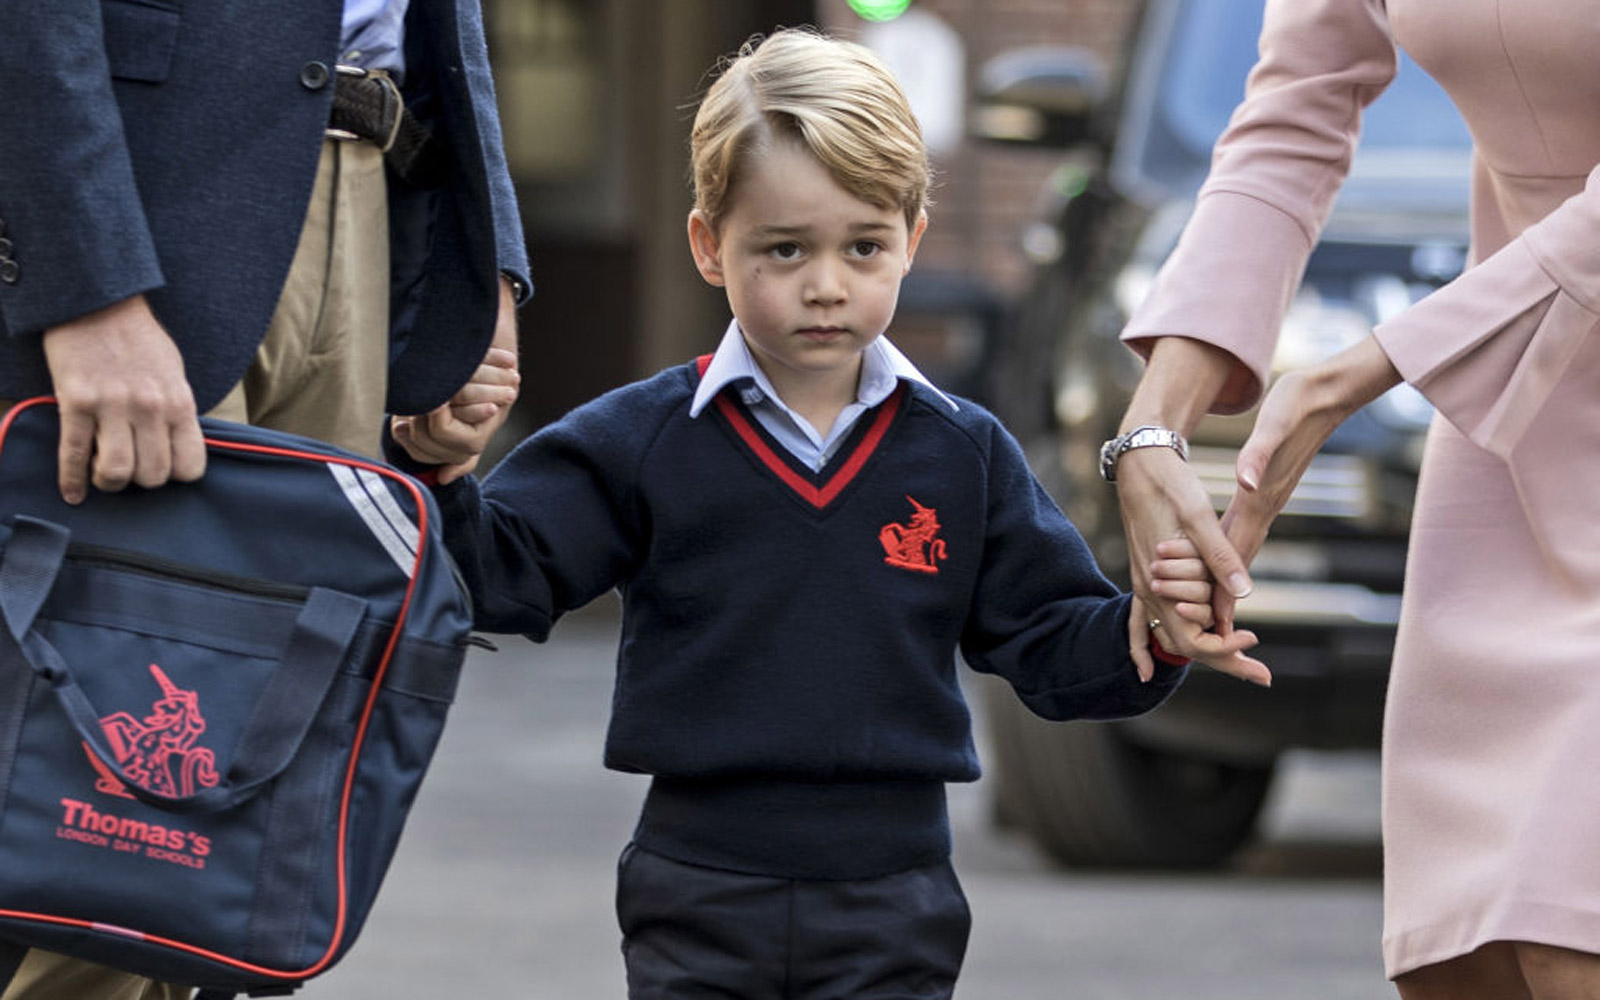 Prince George Is Making a Cameo on His Favorite TV Show, 'Fireman Sam'